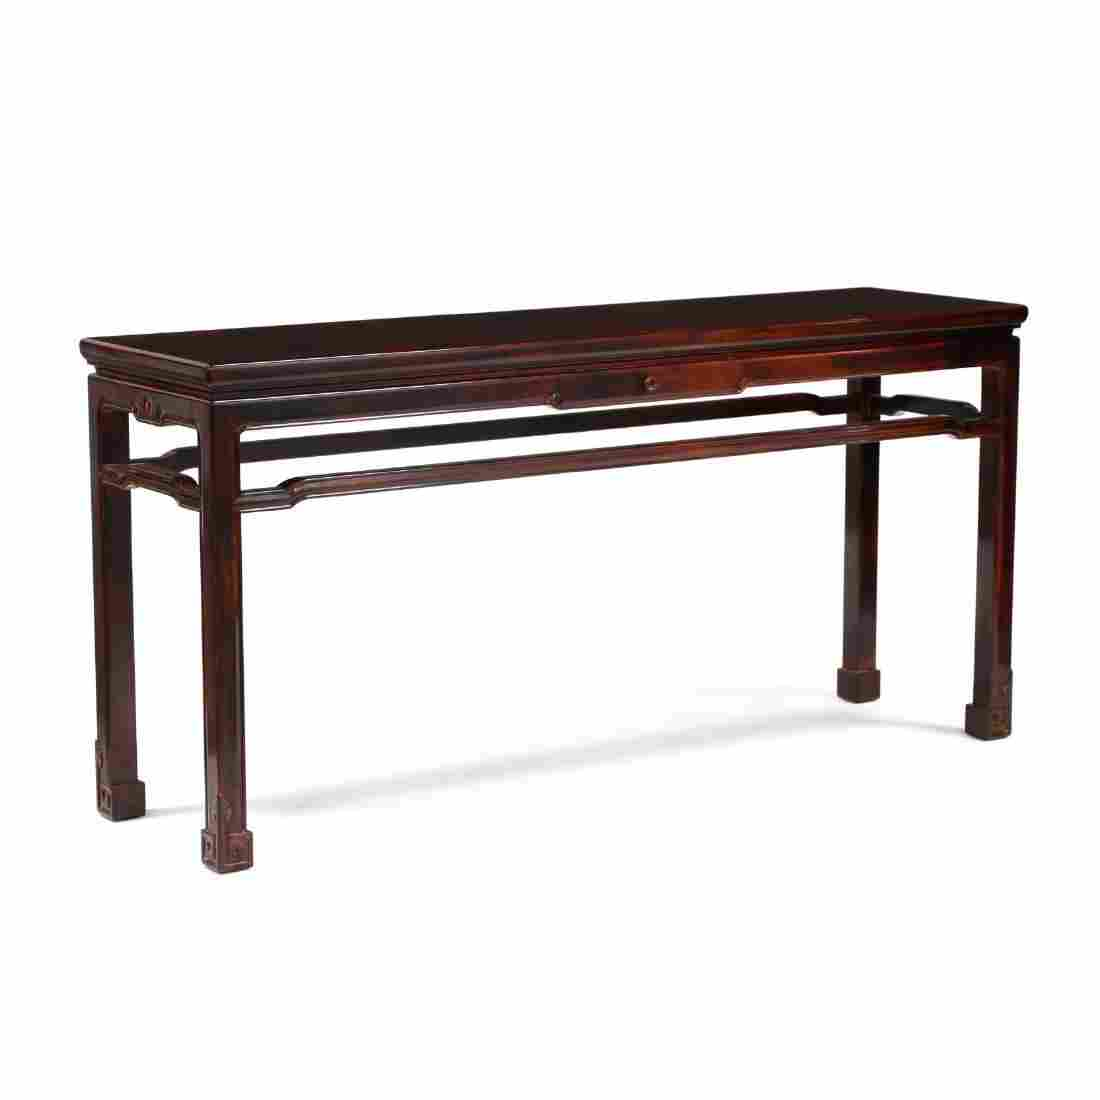 Chinese Carved Hardwood Console Table, Retailed Through